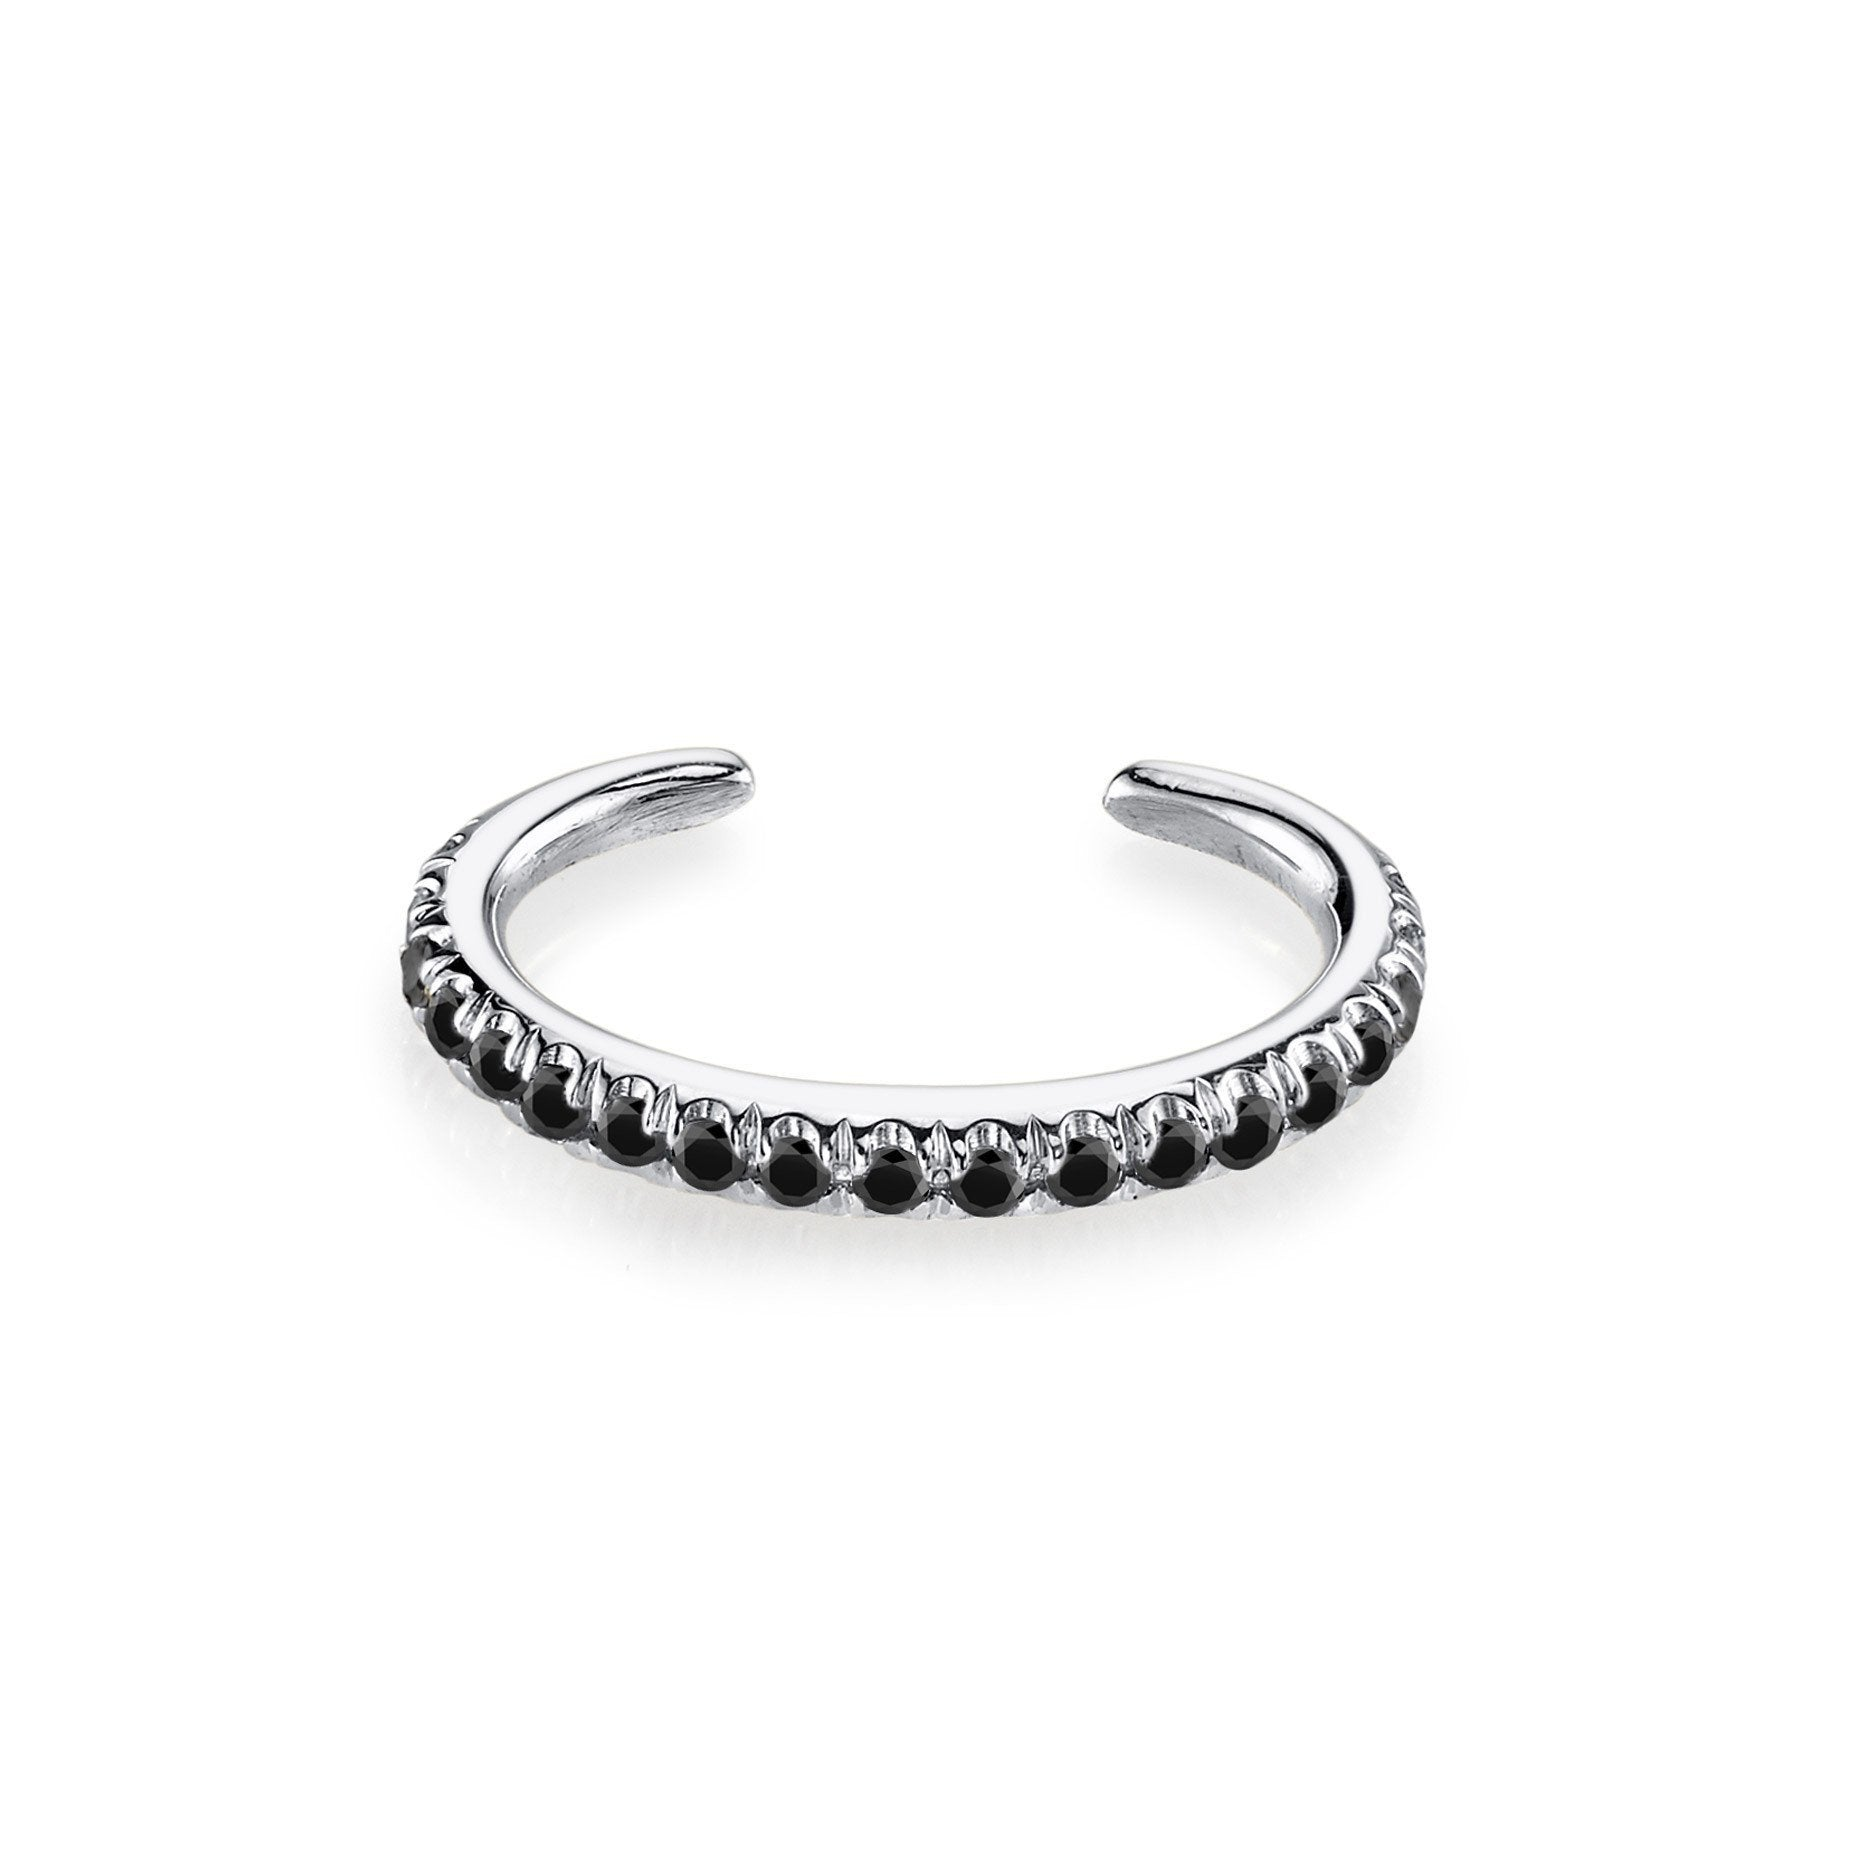 Reloaded Ear Cuff With Black Pavé Diamonds - Gabriela Artigas